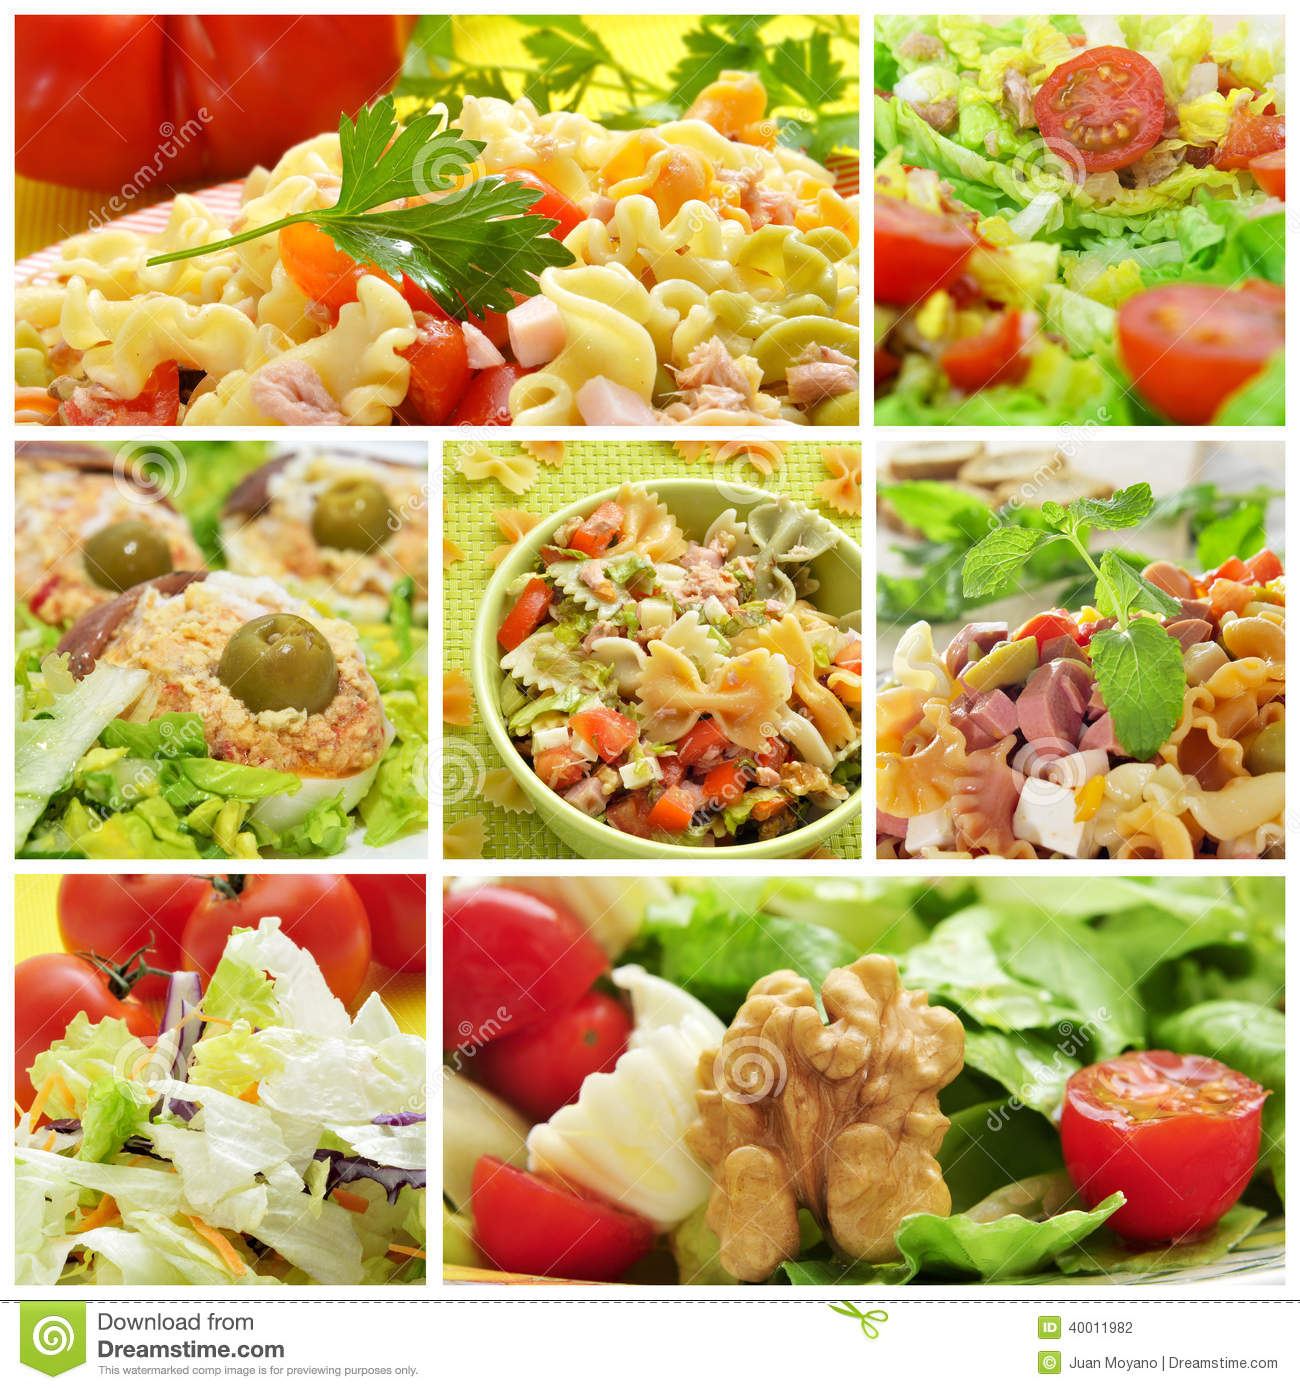 Collage de salade